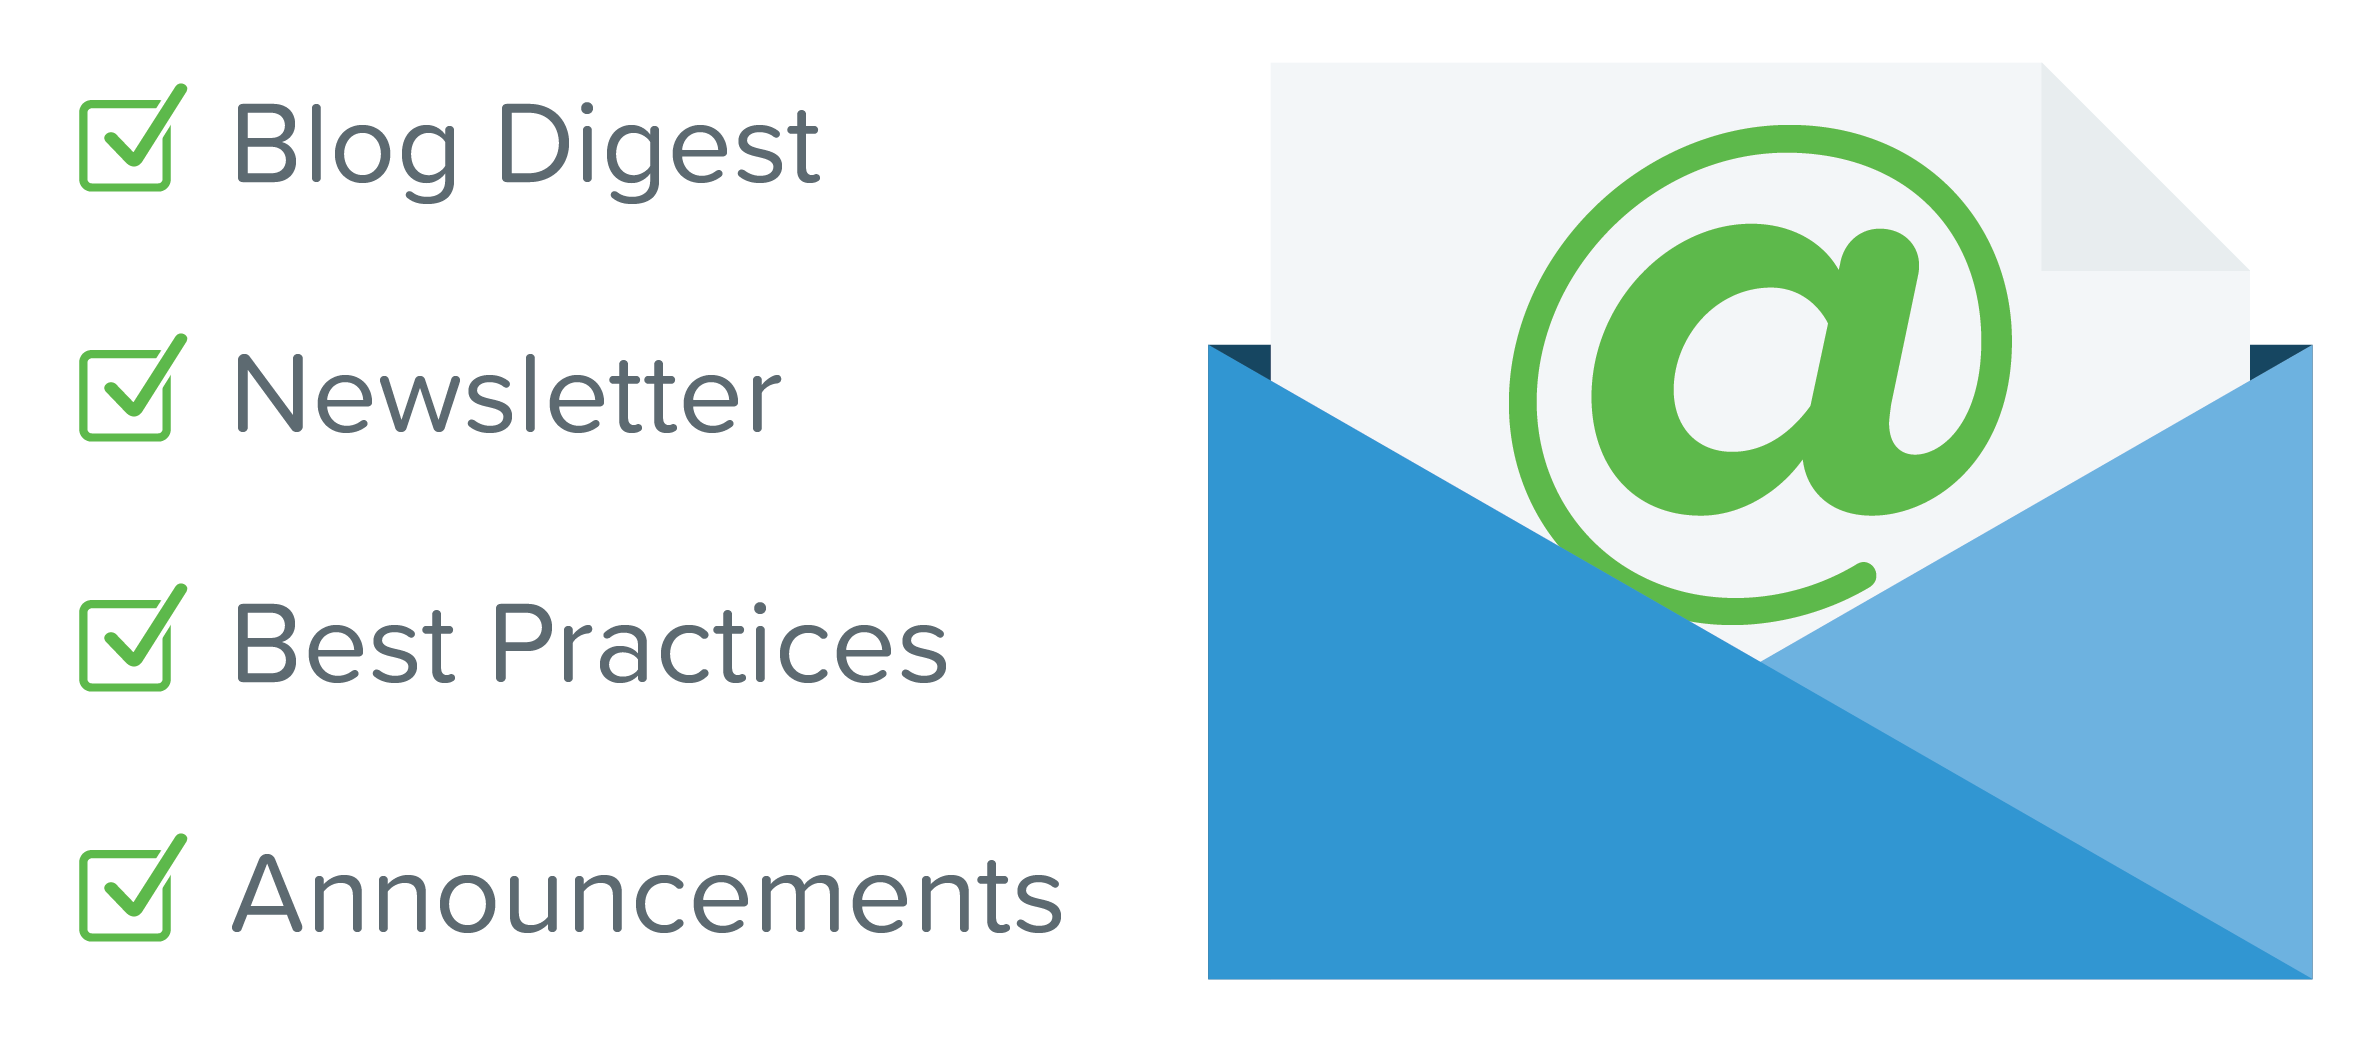 Need to update your email preferences?